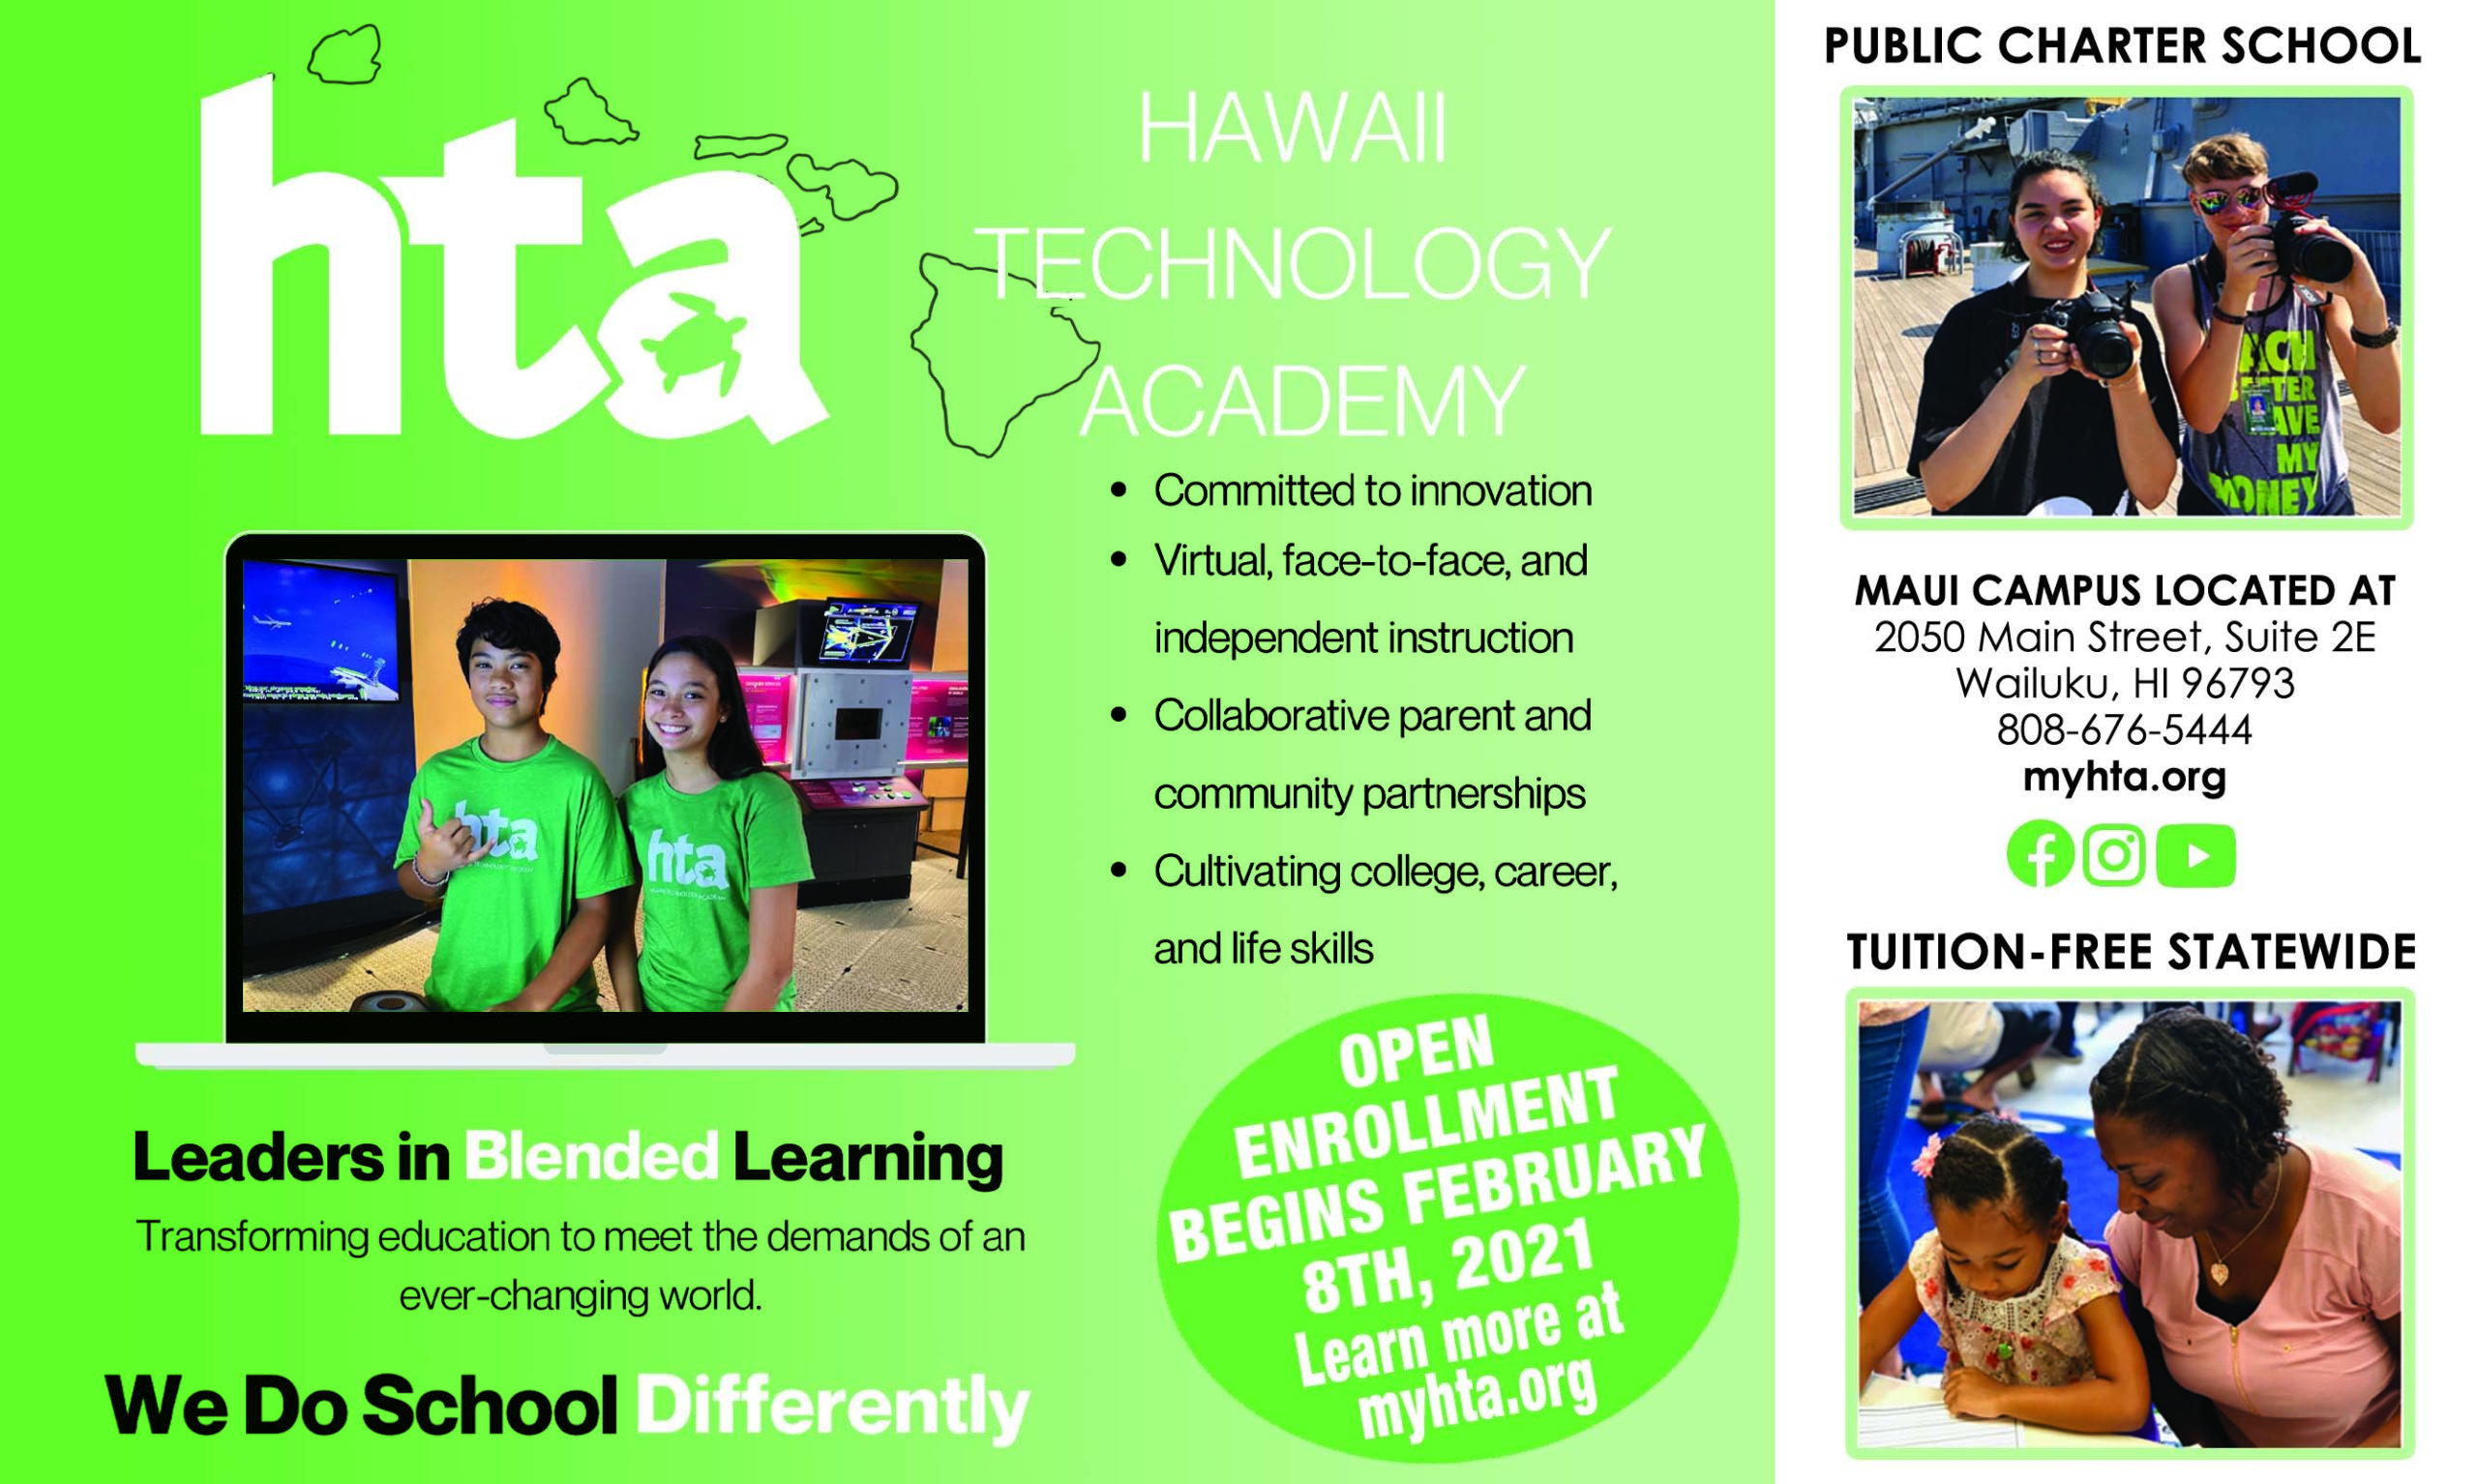 Hawaii Technology Academy Maui